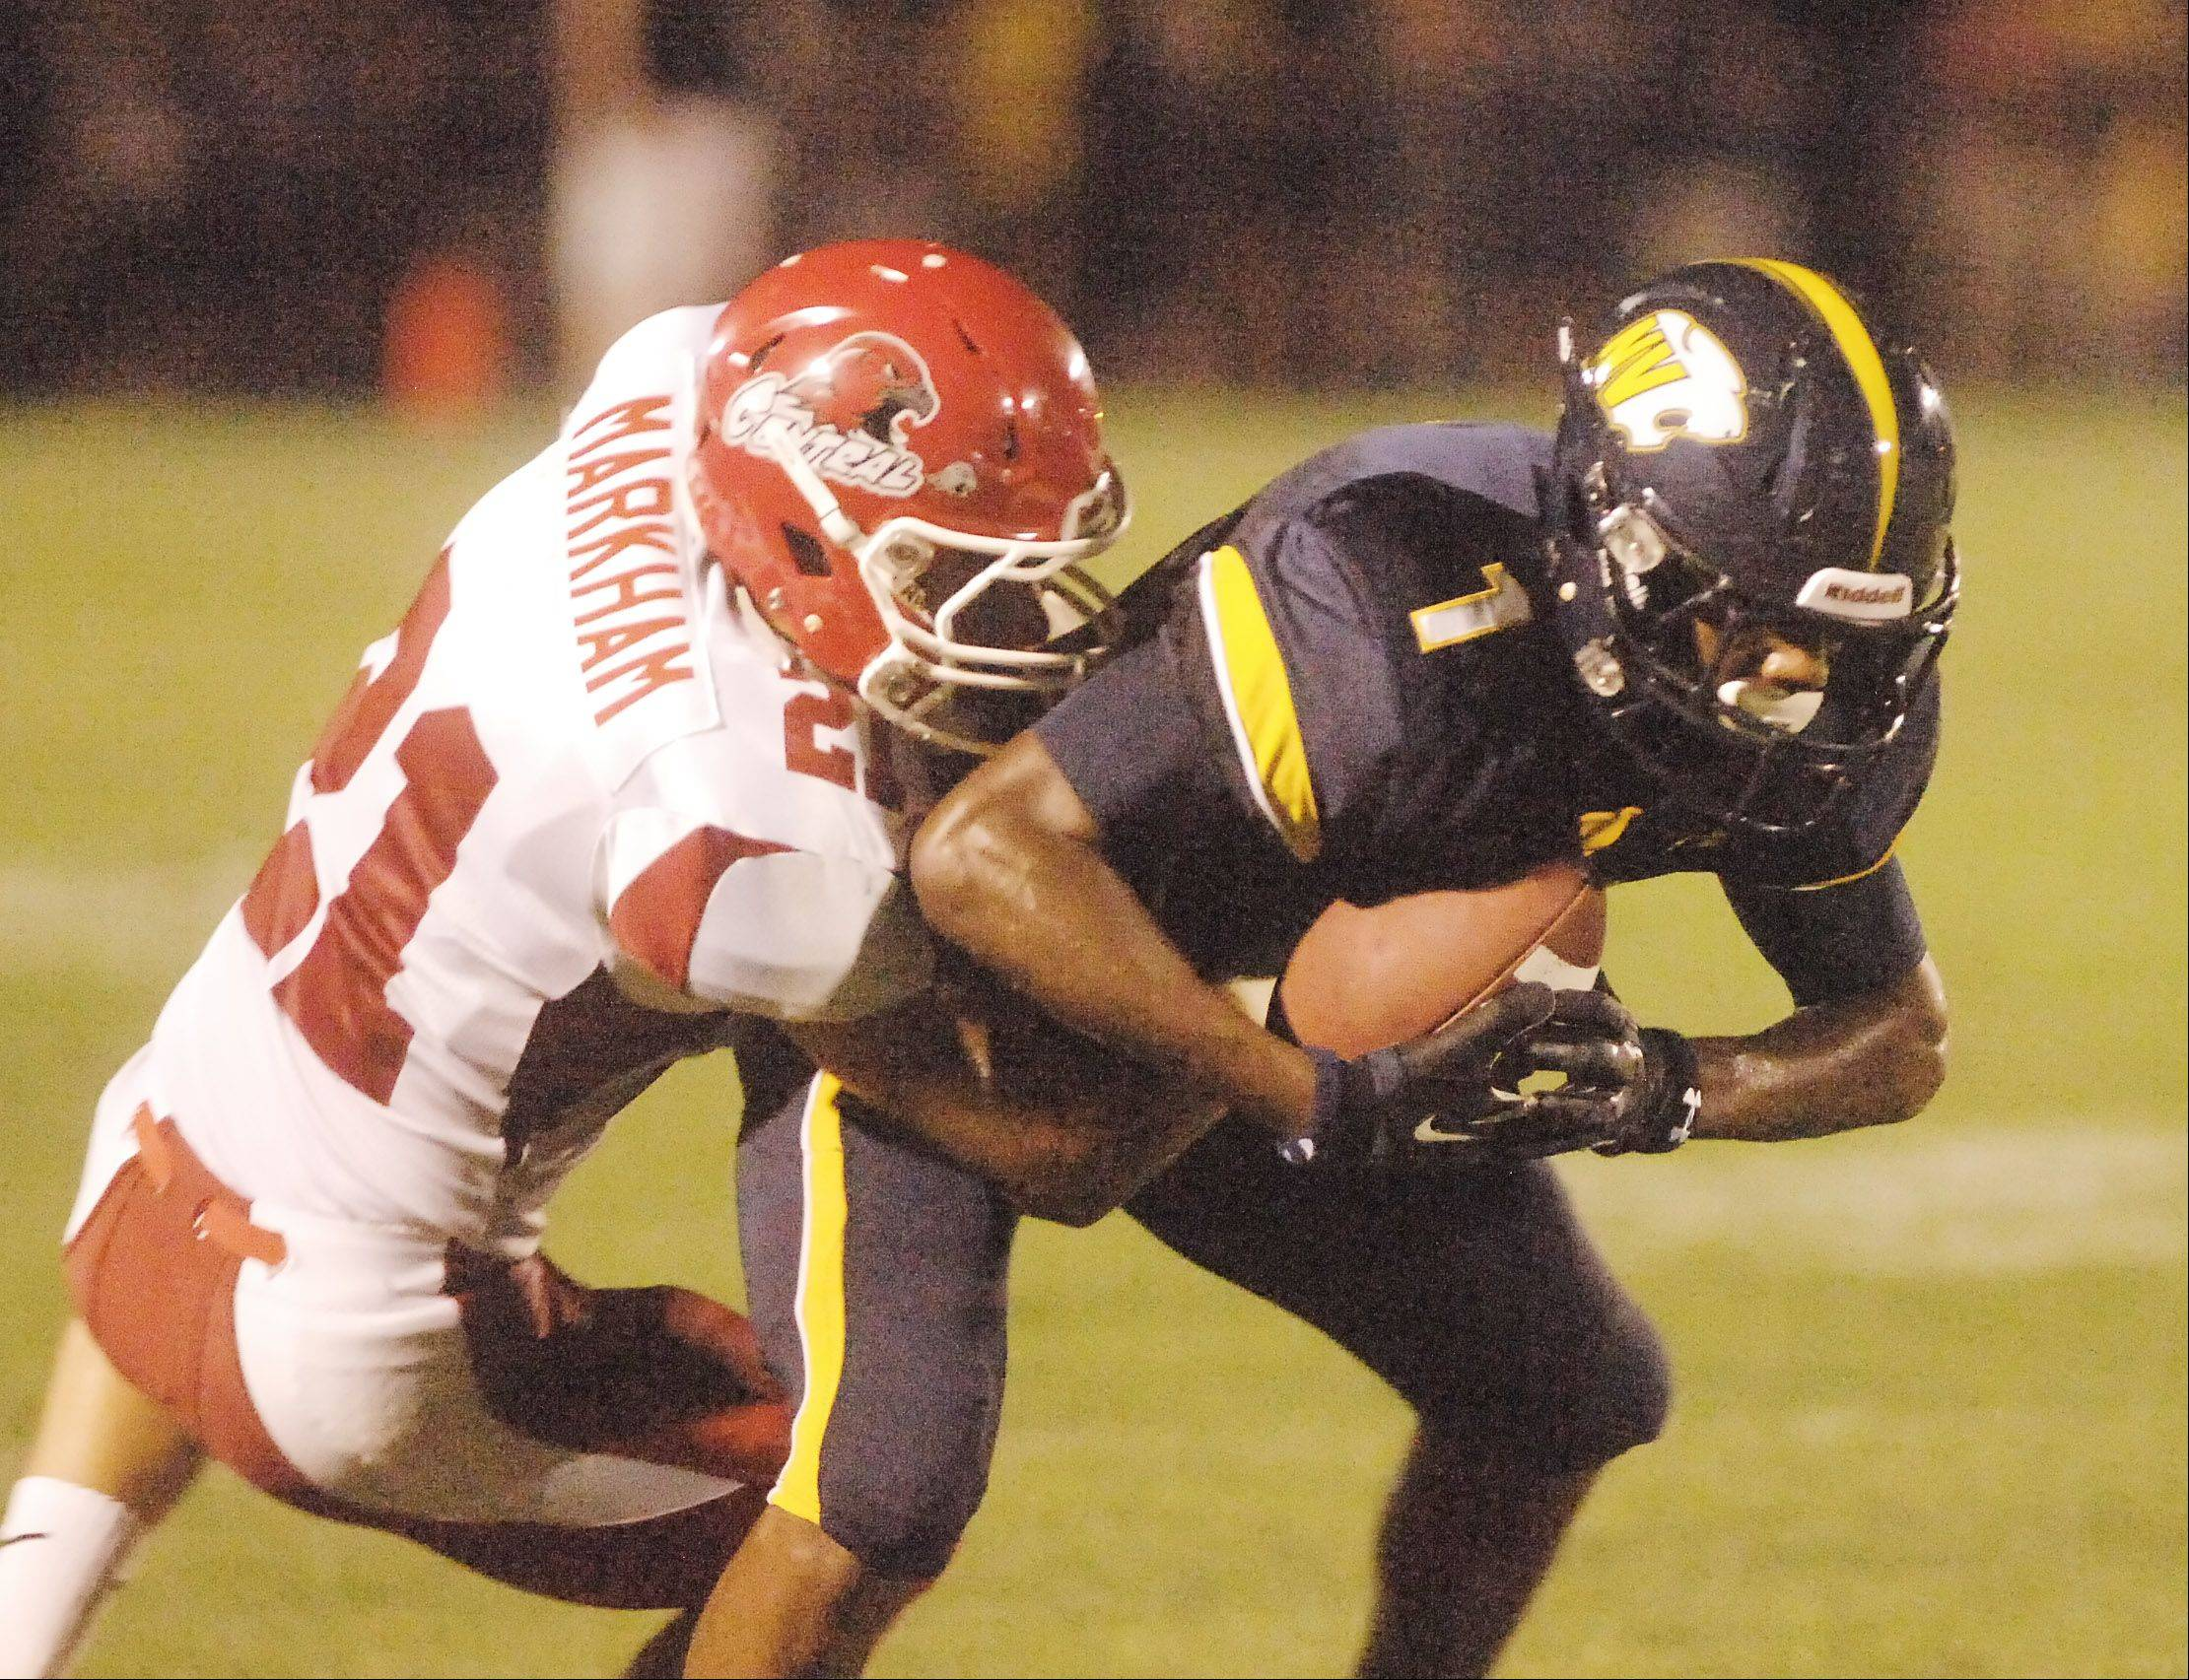 Paul Michna/pmichna@dailyherald.com Justin Markham of Naperville Central pulls down Reggie Ervin of Neuqua Vally during the Naperville Central at Neuqua Valley football game Friday.